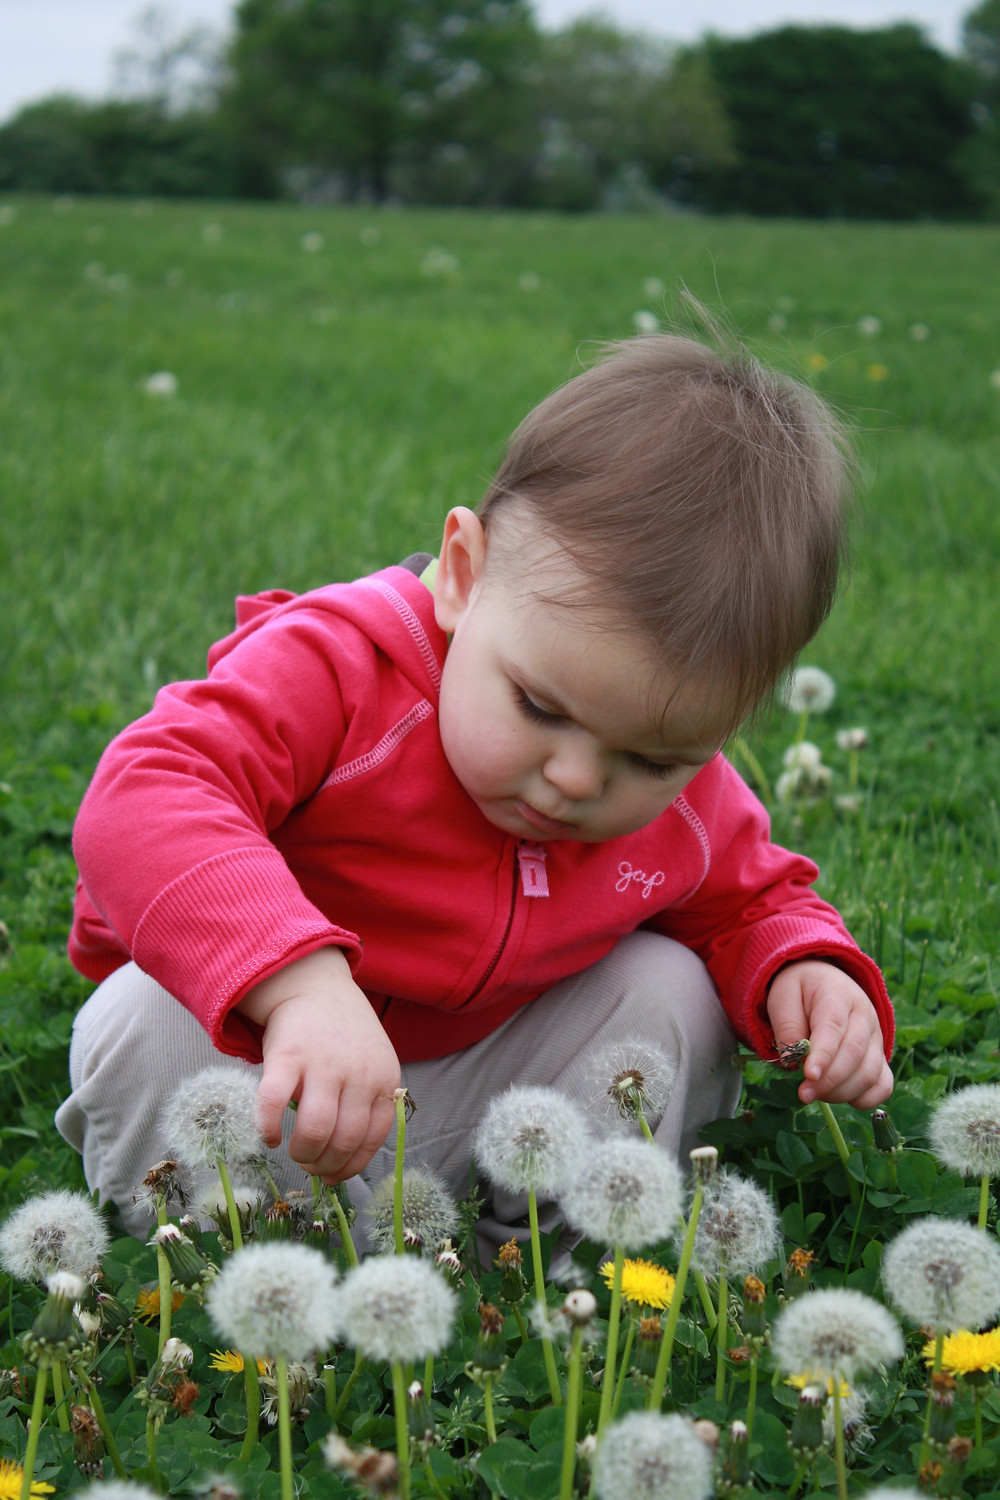 young child exploring dandelions in field